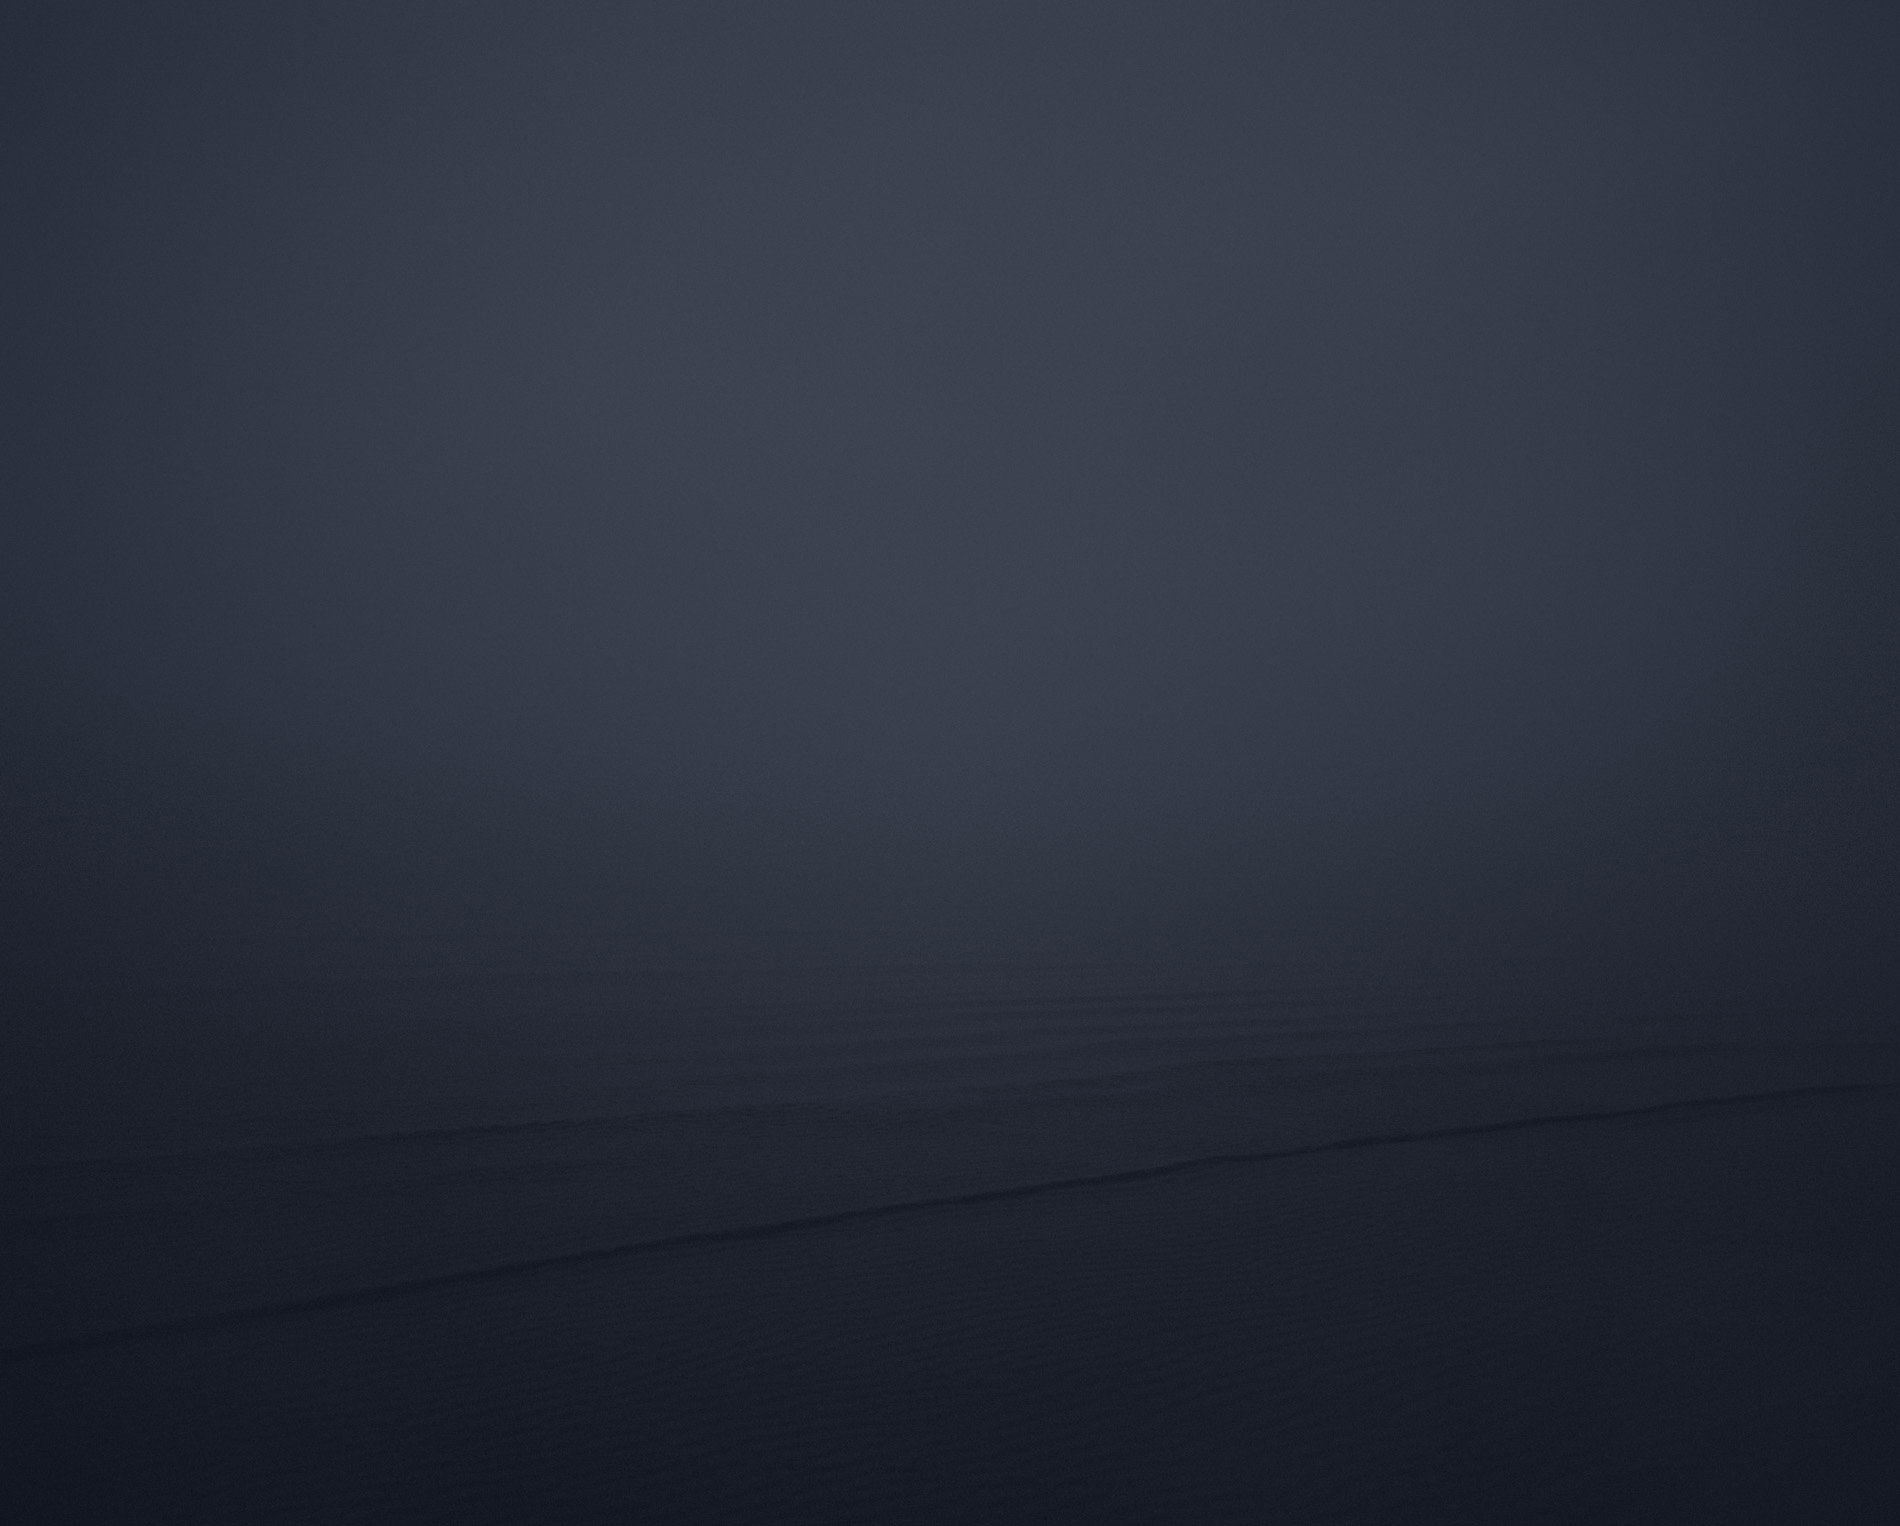 Misty dark seascape